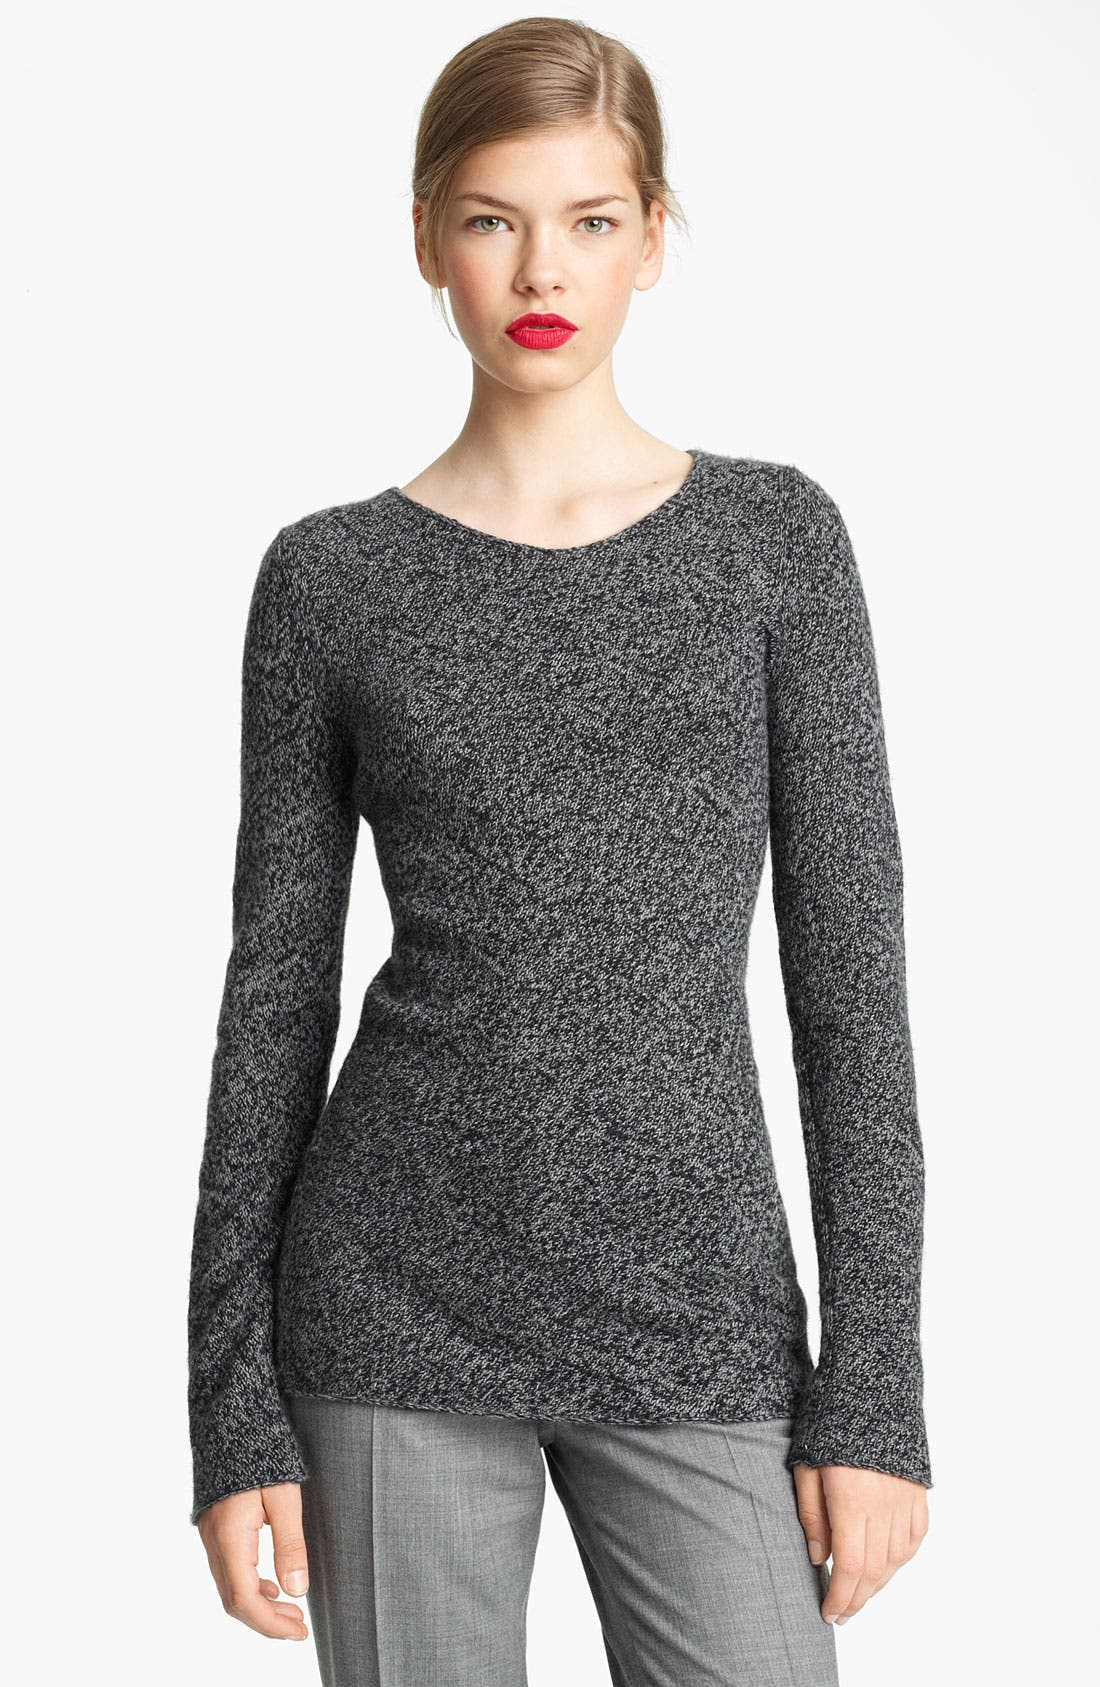 Main Image - Michael Kors Marled Cashmere Sweater